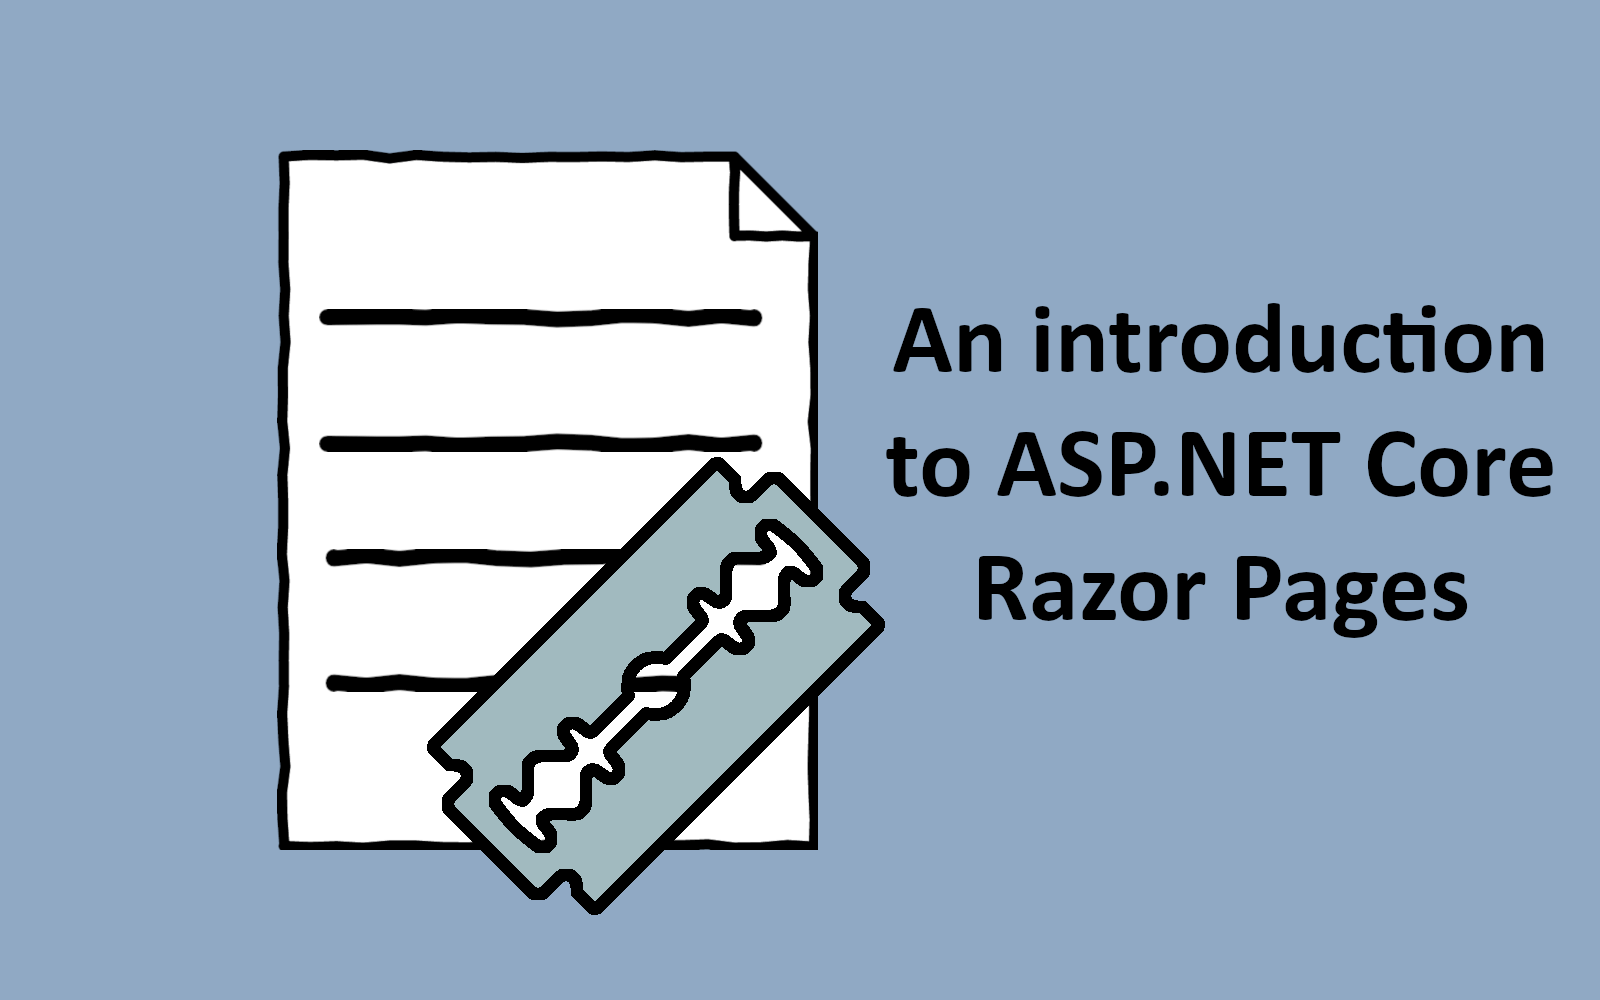 An introduction to ASP.NET Core Razor Pages